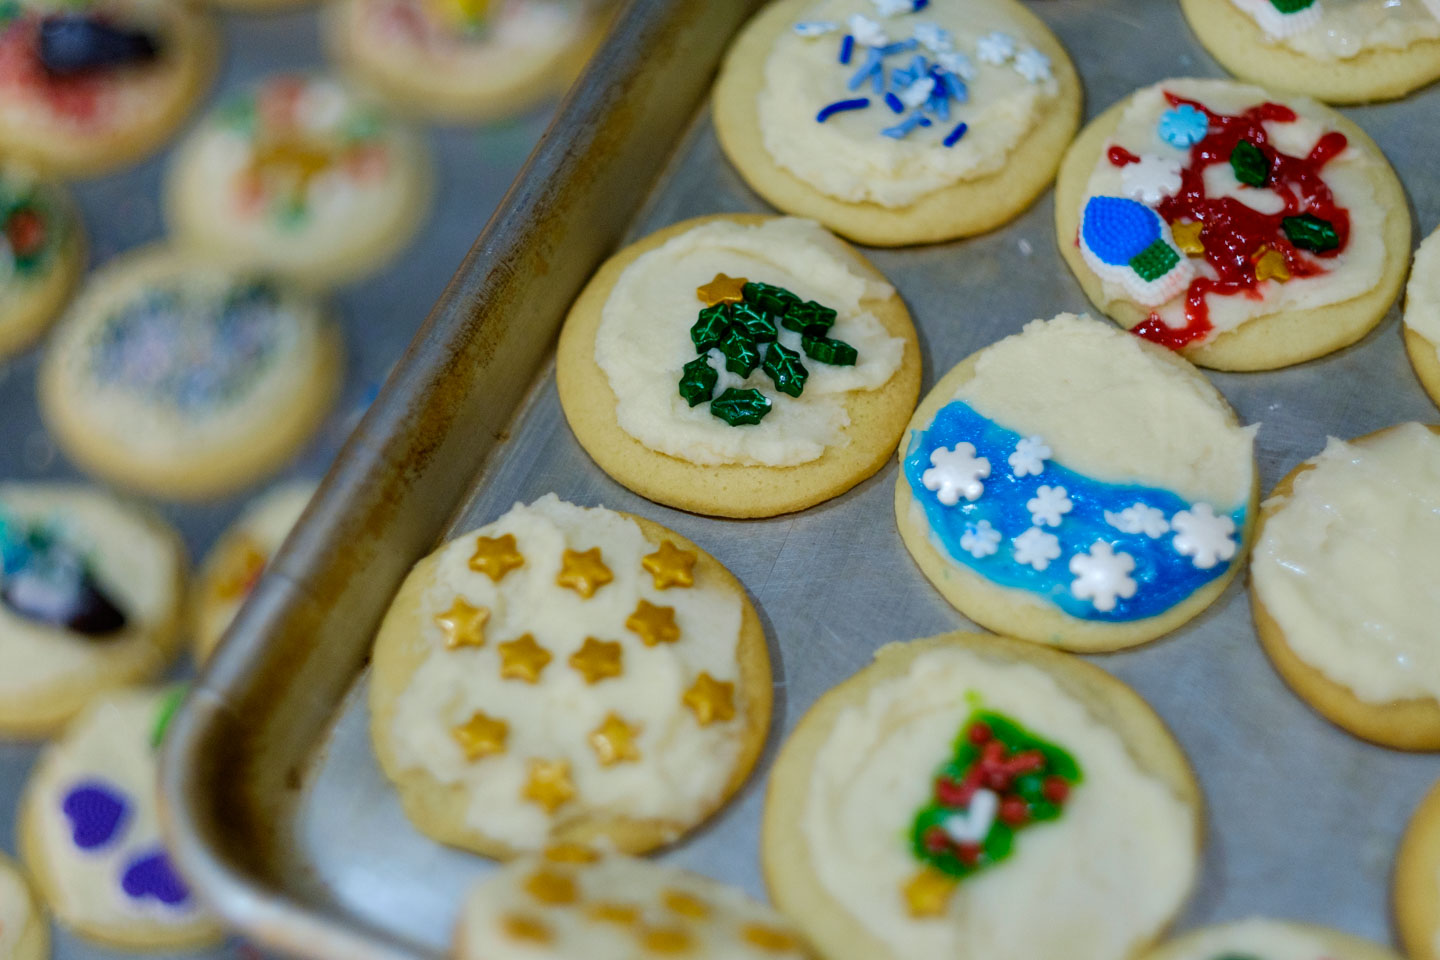 Kids decorate the sugar cookies